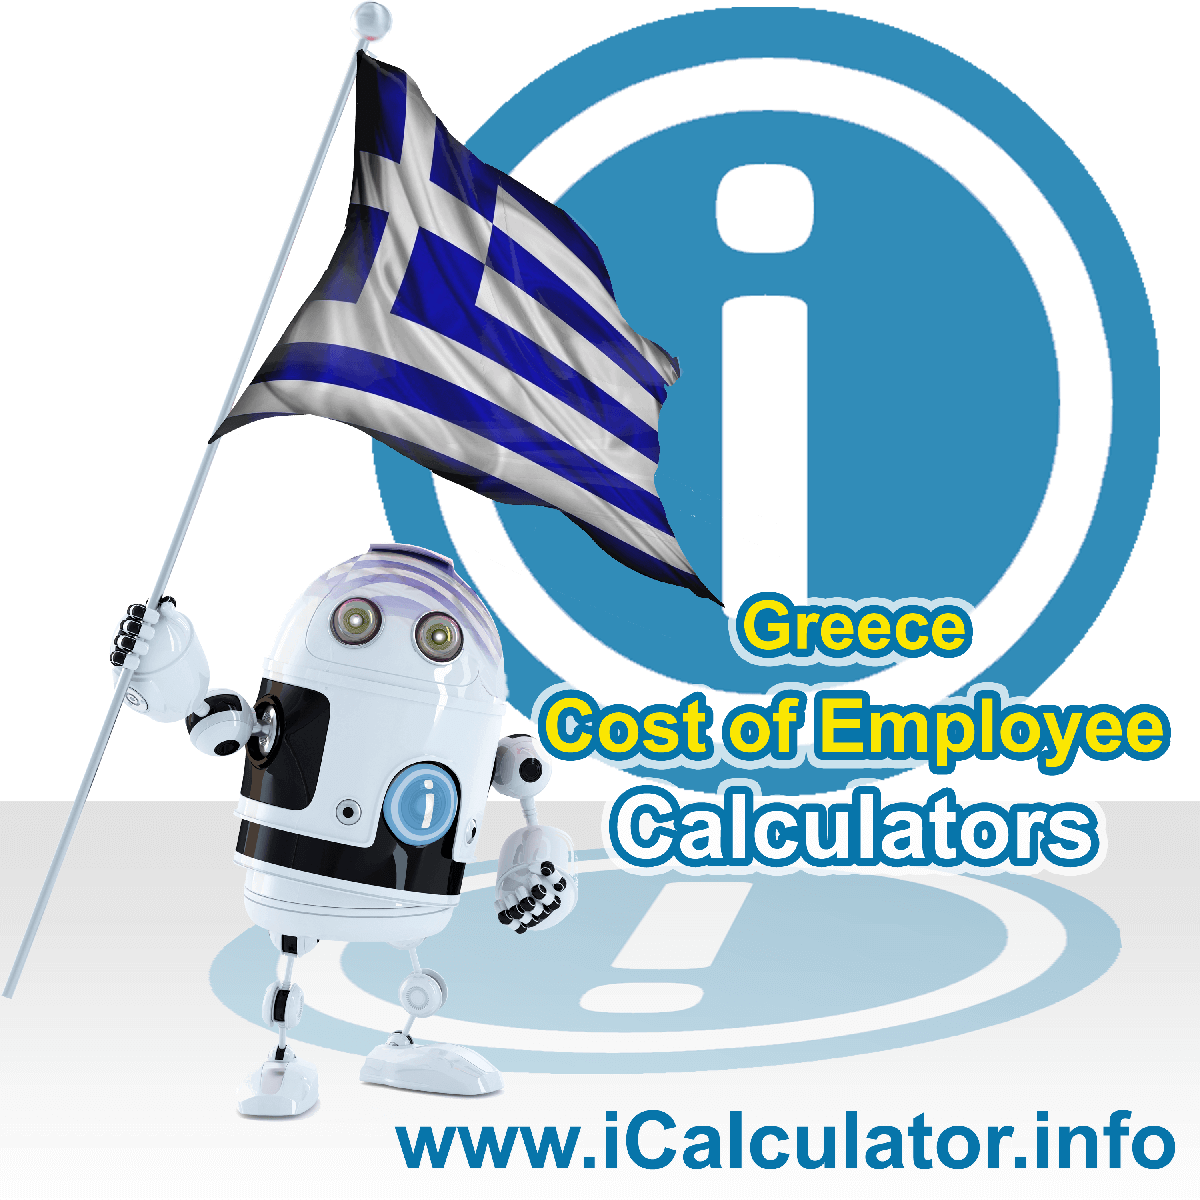 Greece Payroll Calculator. This image shows a new employer in Greece looking at payroll and human resource services in Greece as they want to hire an employee in Greece but are not sure of the employment costs. So, they make use of the Greece payroll calculator to understand their employment cost in Greece in 2021